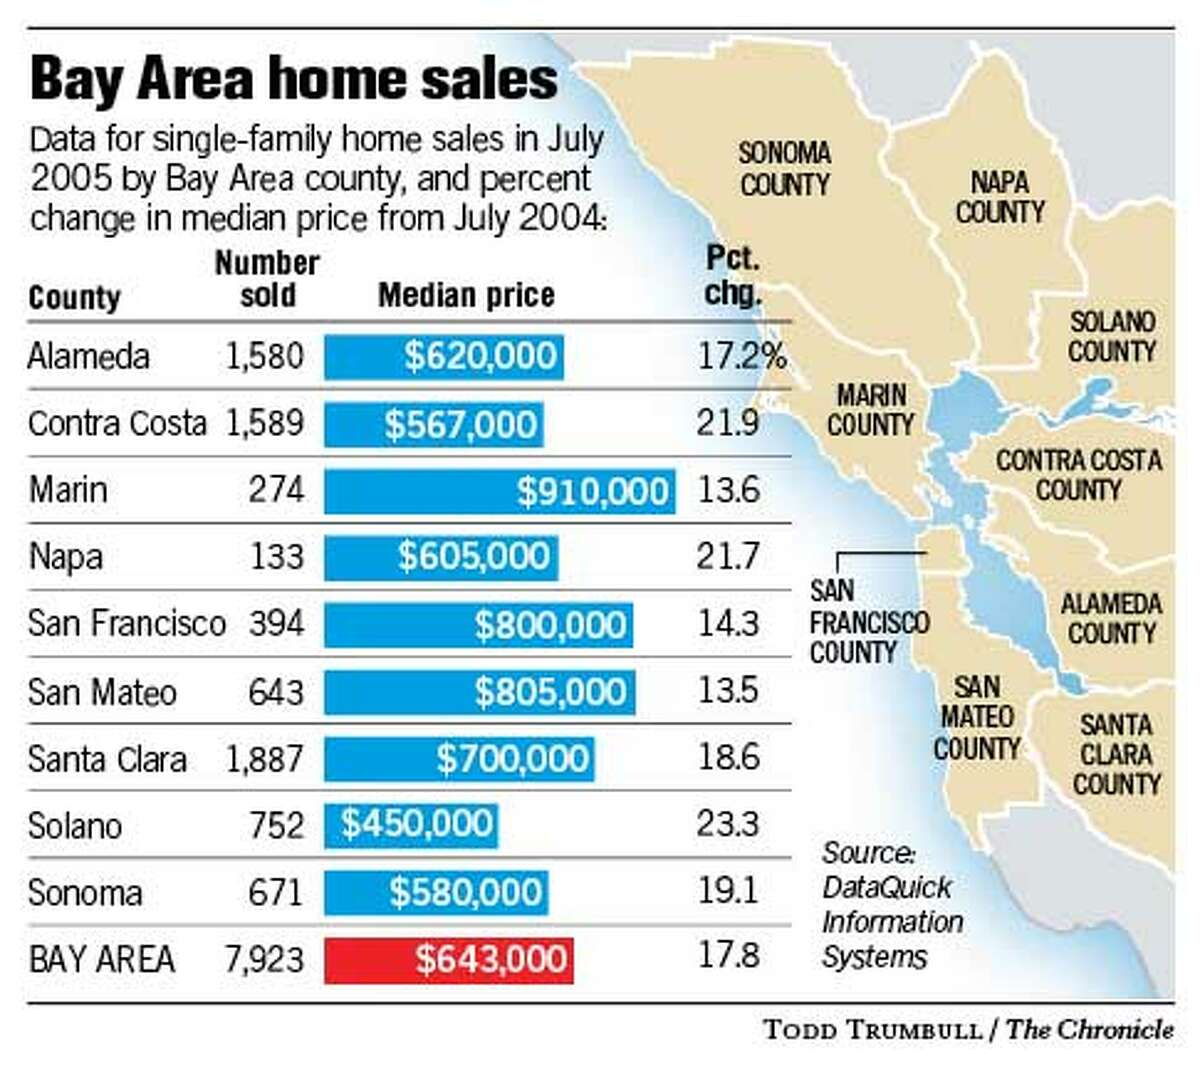 Bay Area Home Sales. Chronicle graphic by Todd Trumbull